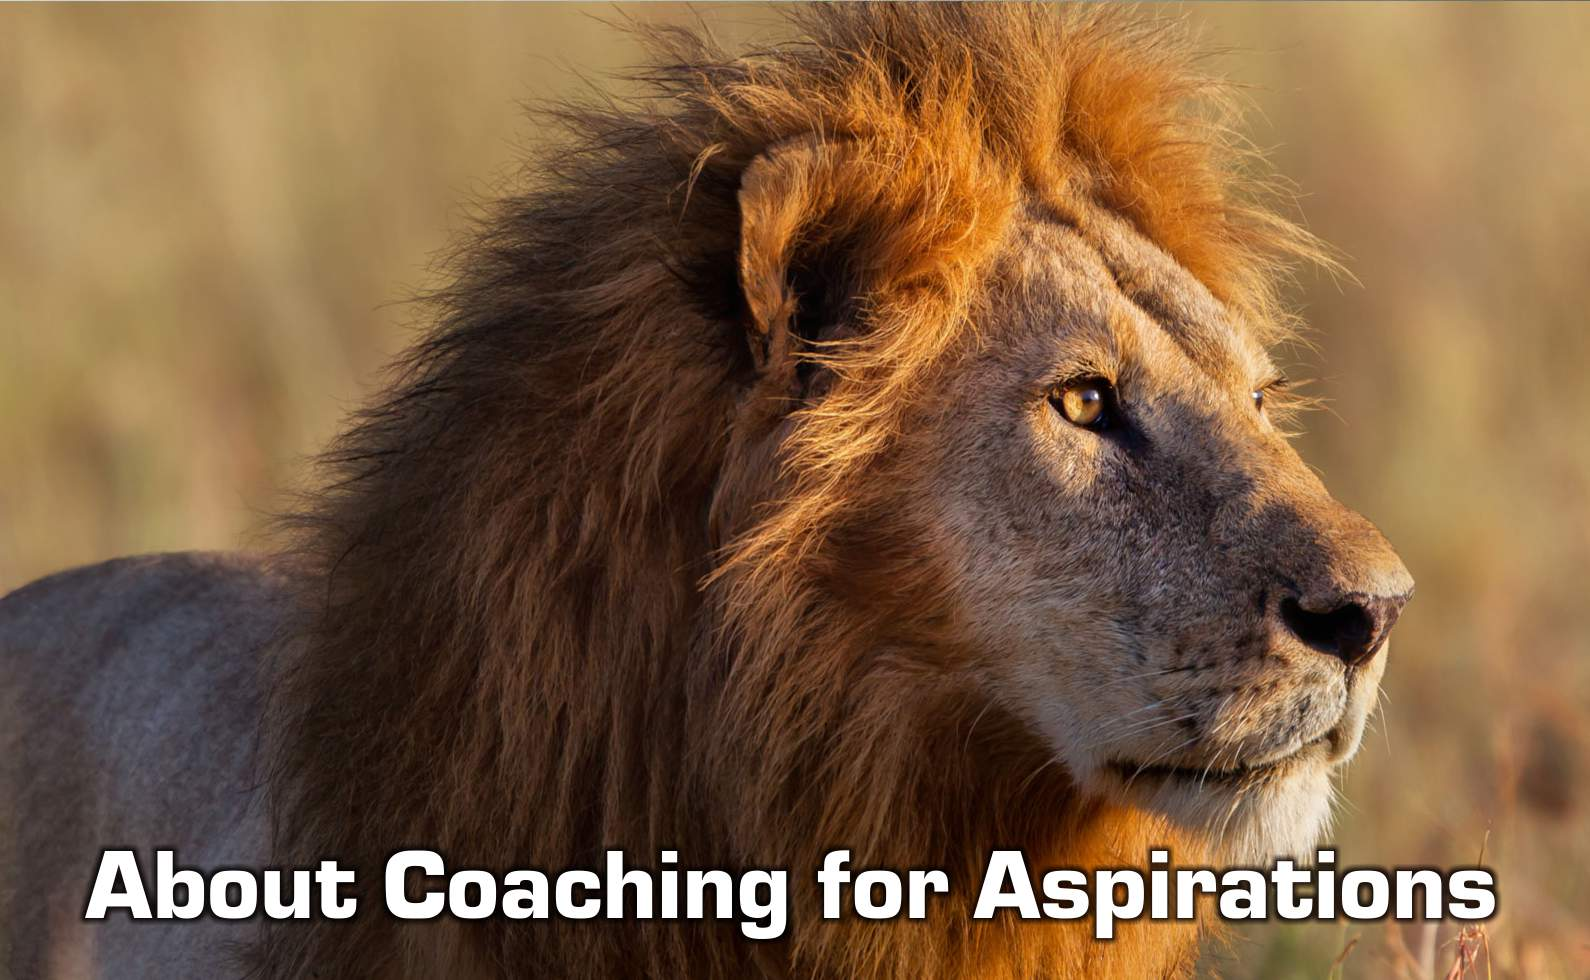 About Coaching for Aspirations